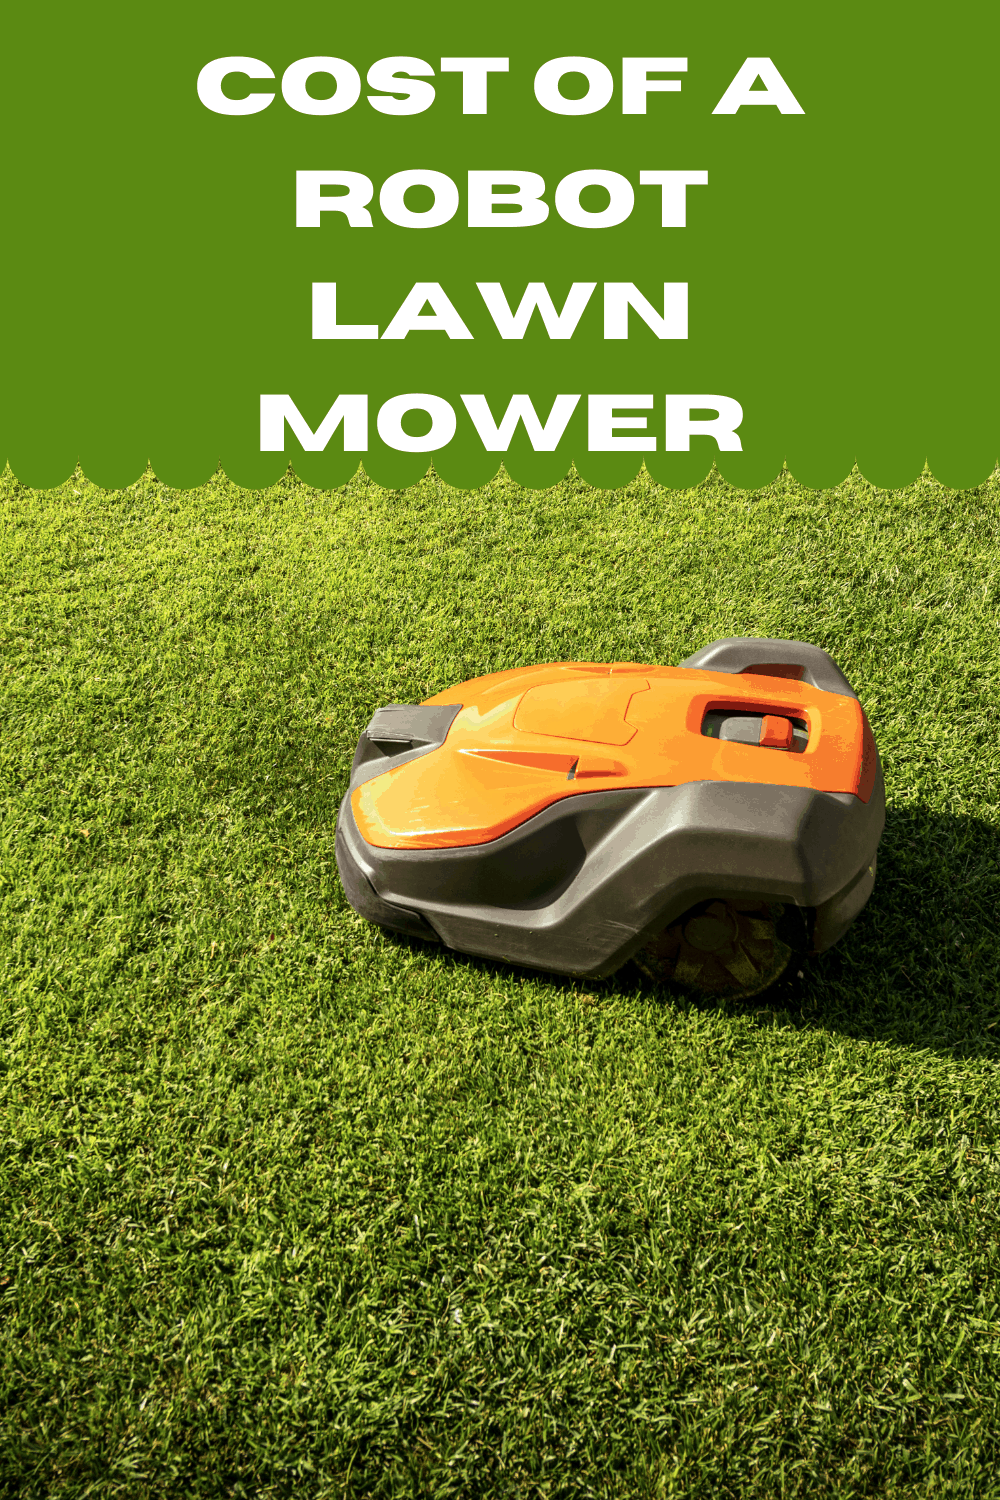 cost of a robot lawn mower to cut your grass